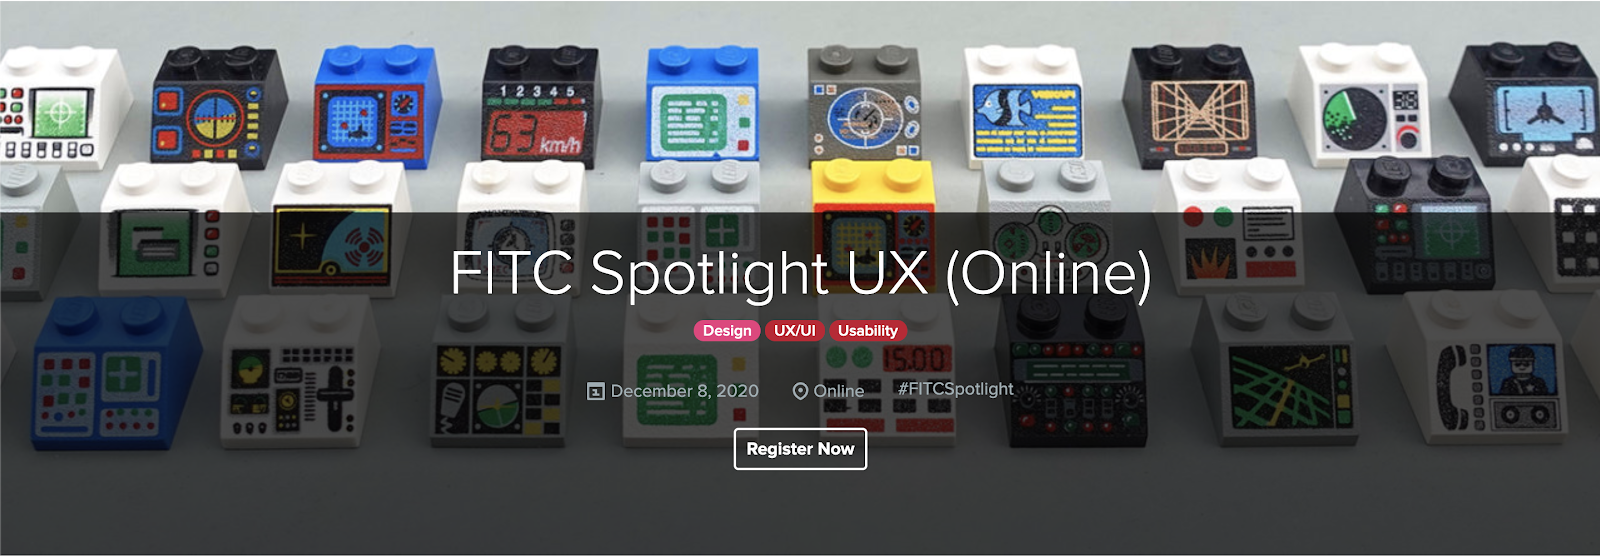 Screenshot of FITC Spotlight UX (Online) registration page.